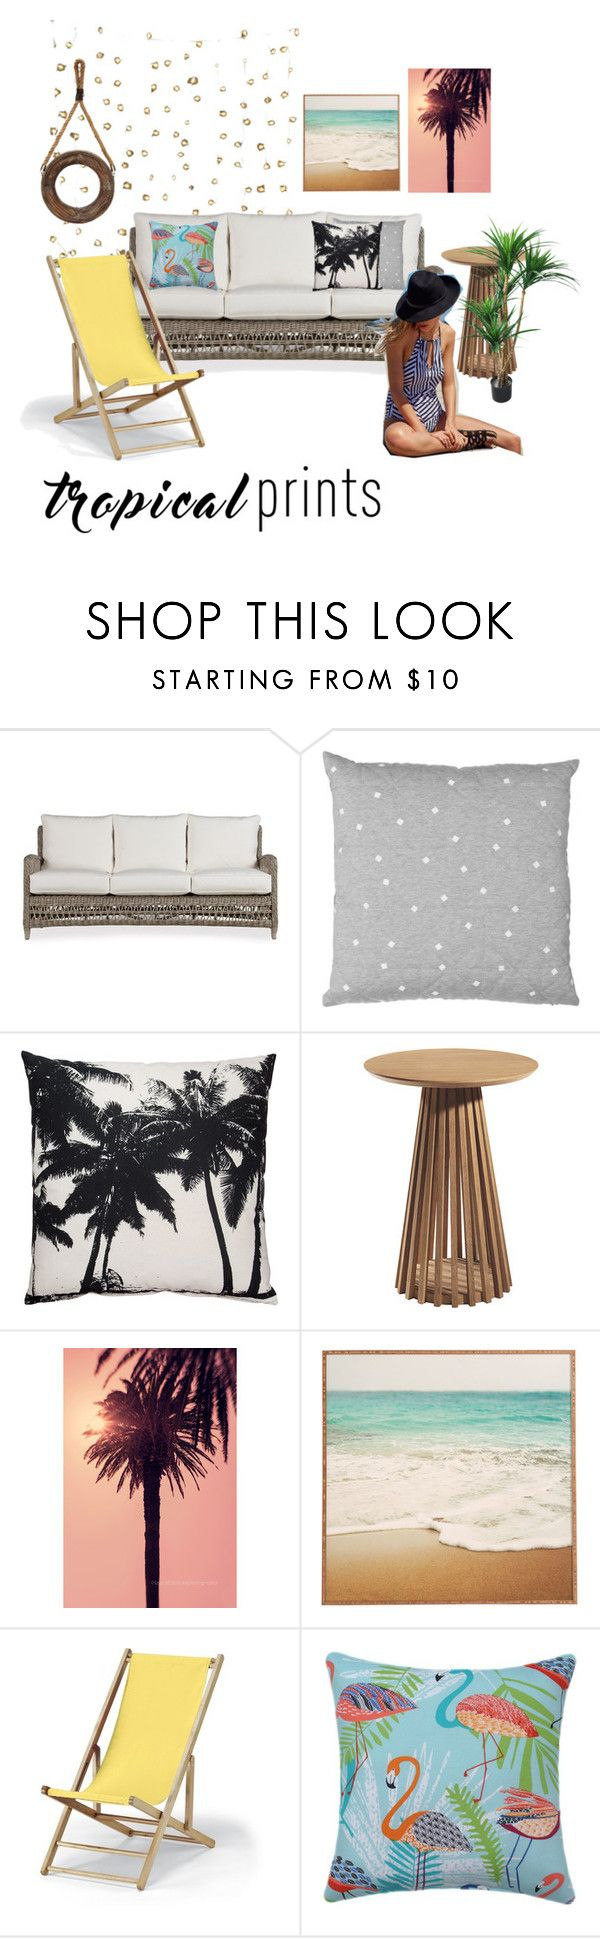 """""""Tropical Prints"""" by dindydind ❤ liked on Polyvore featuring interior, interiors, interior design, home, home decor, interior decorating, Telescope Casual, TradeMark and tropicalprints"""